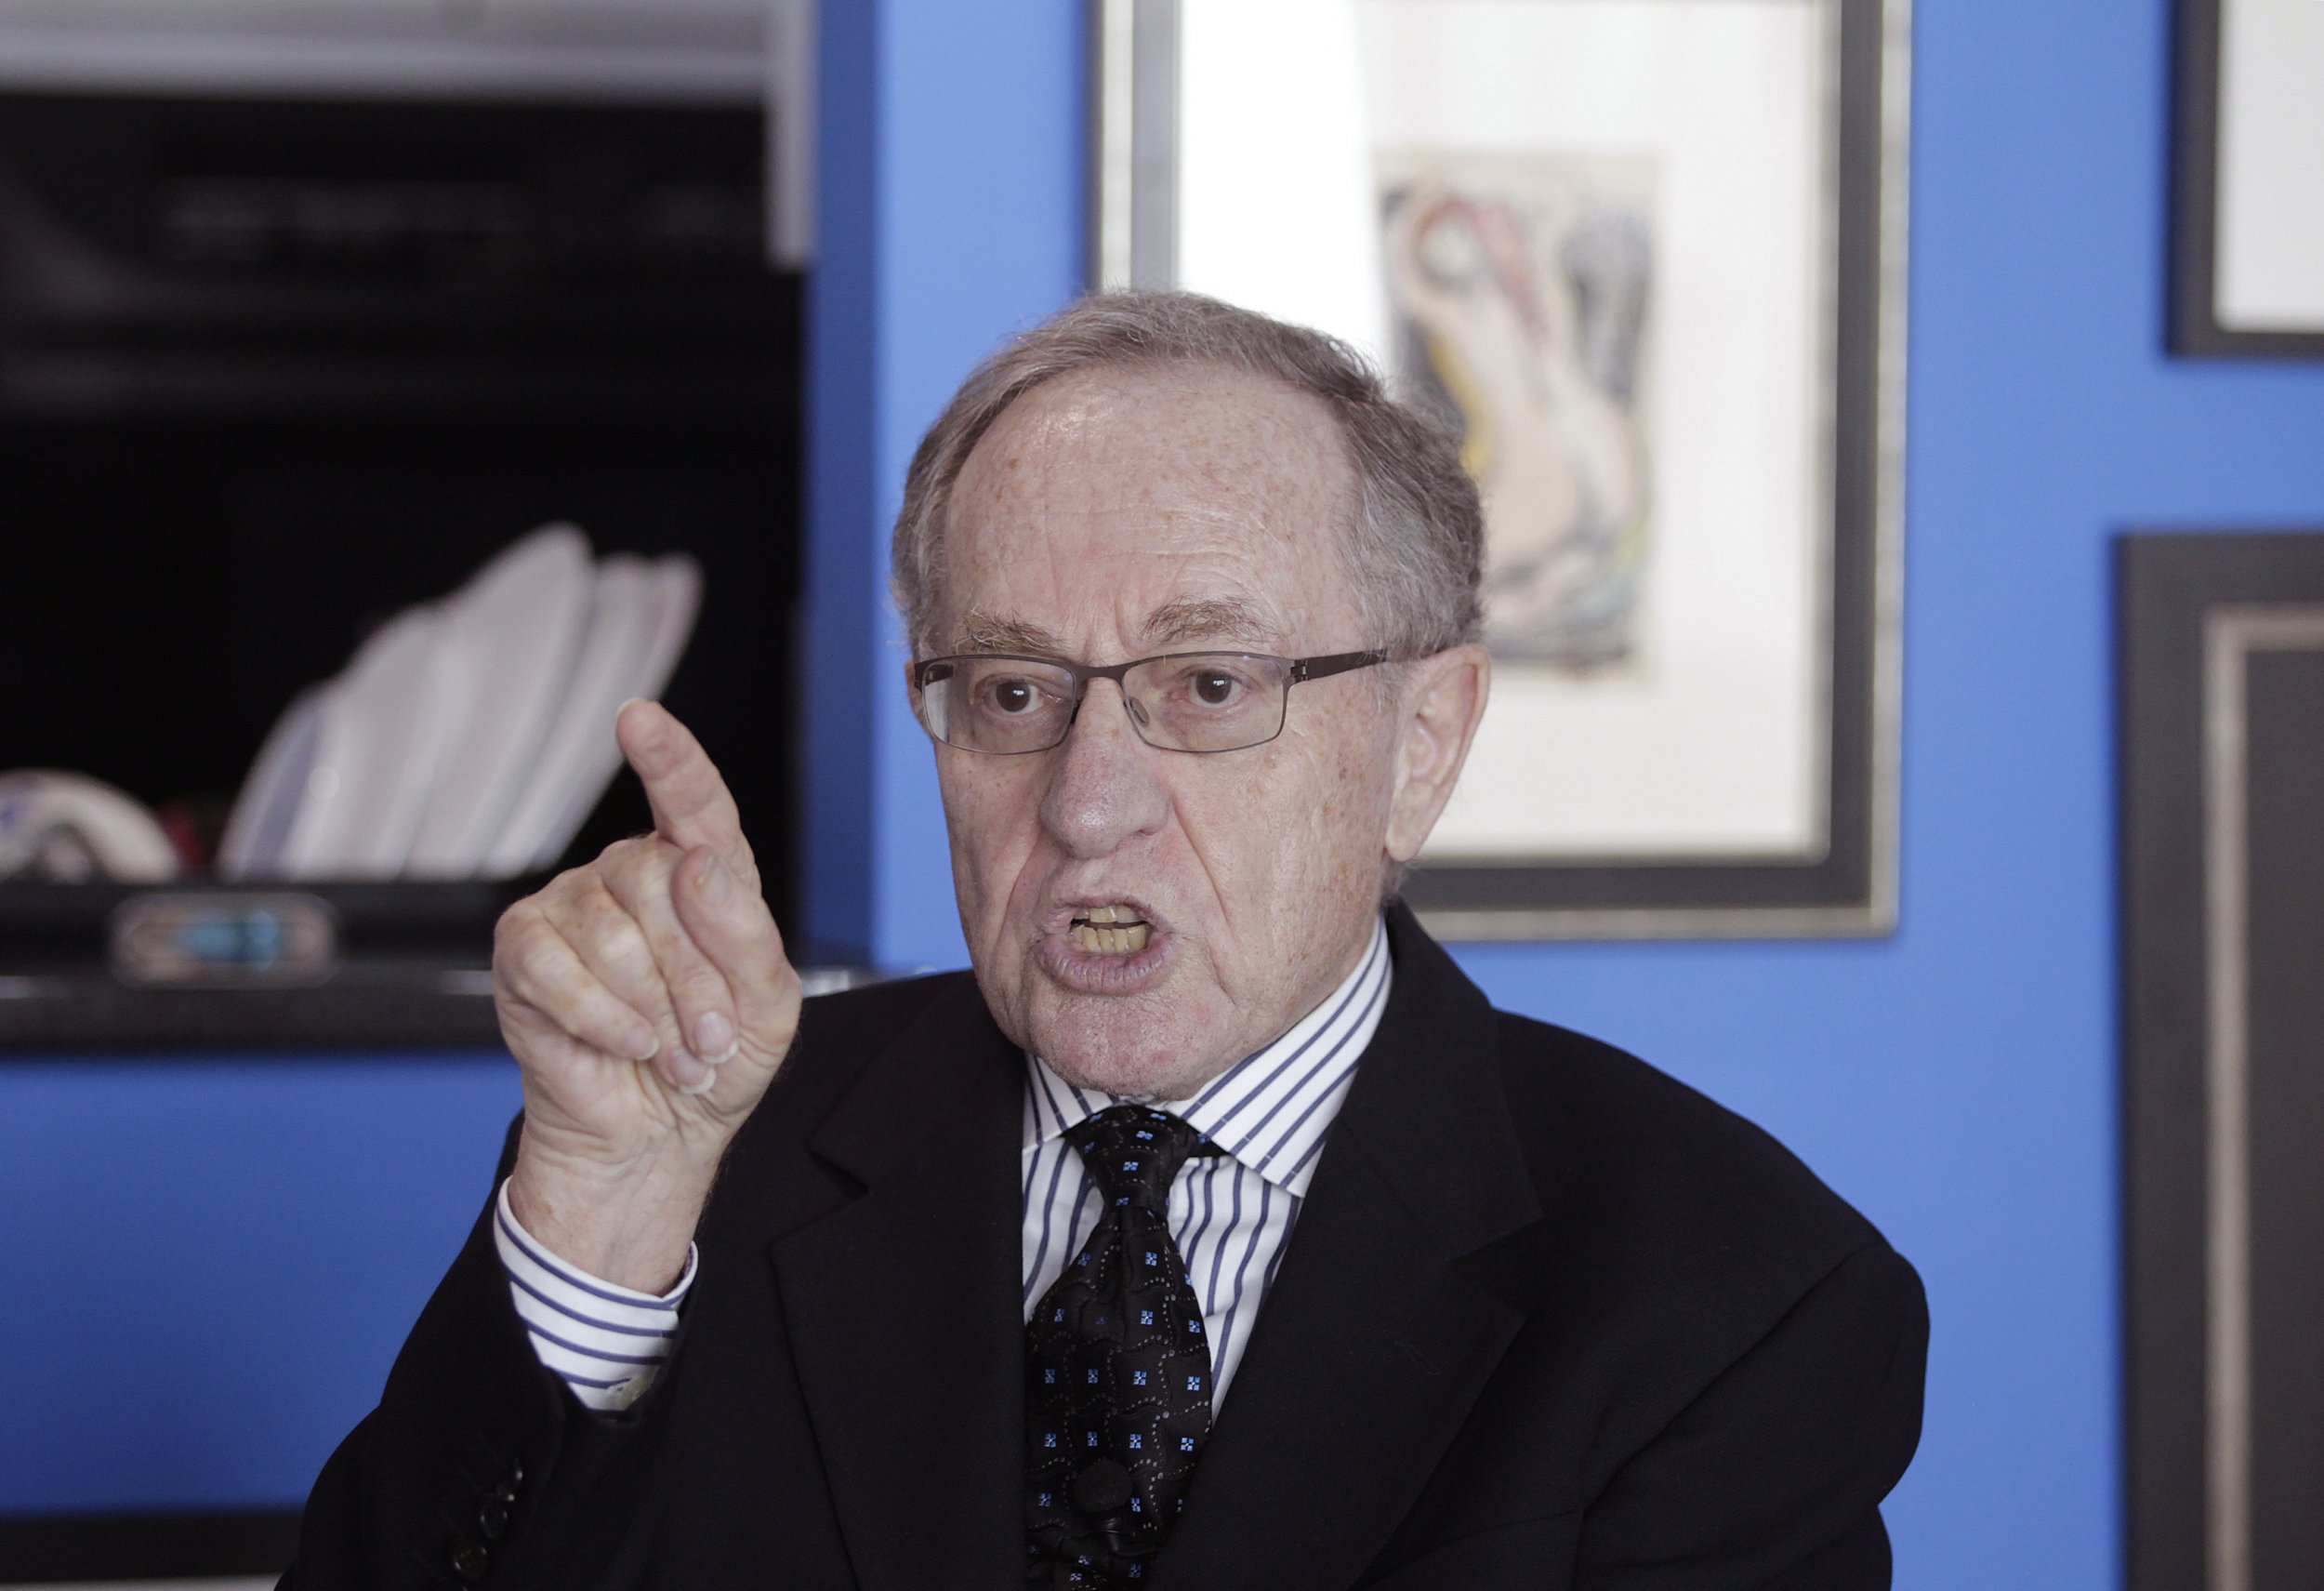 Alan Dershowitz denies sex claims